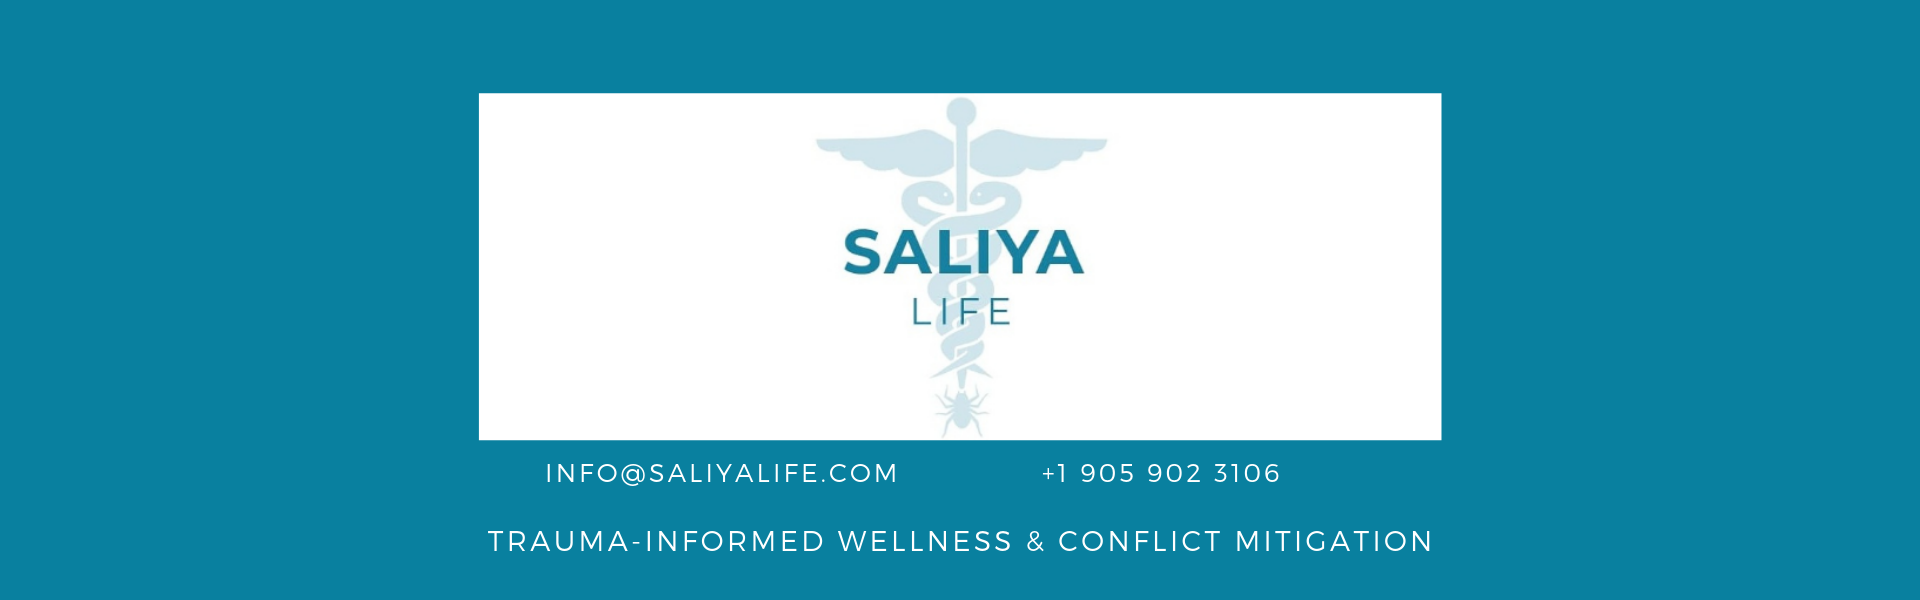 saliya-trauma-informed-wellness-conflict-mitigation-banner